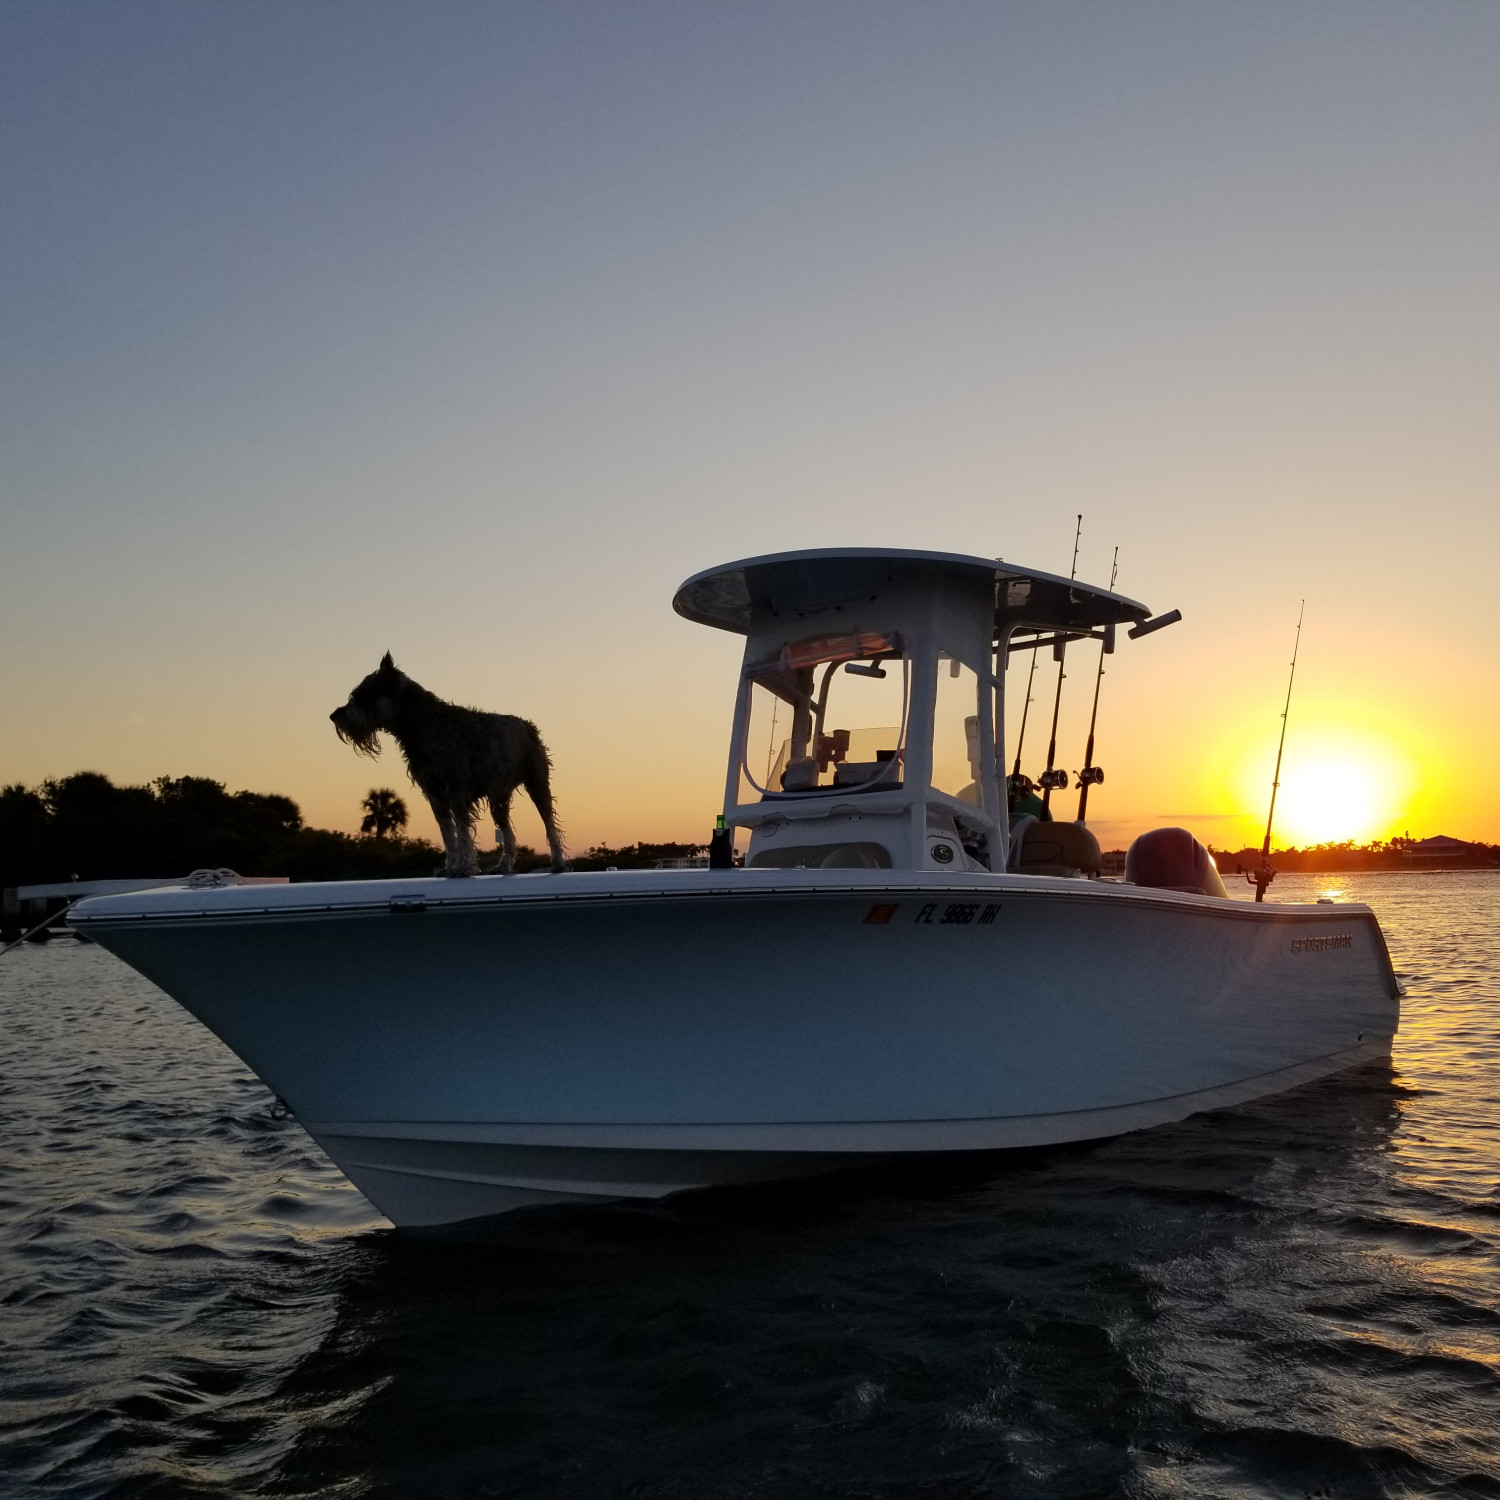 Title: A Schnauzer Sportsman Sunset - On board their Sportsman Open 232 Center Console - Location: Boynton Beach, Fl. Participating in the Photo Contest #SportsmanApril2018